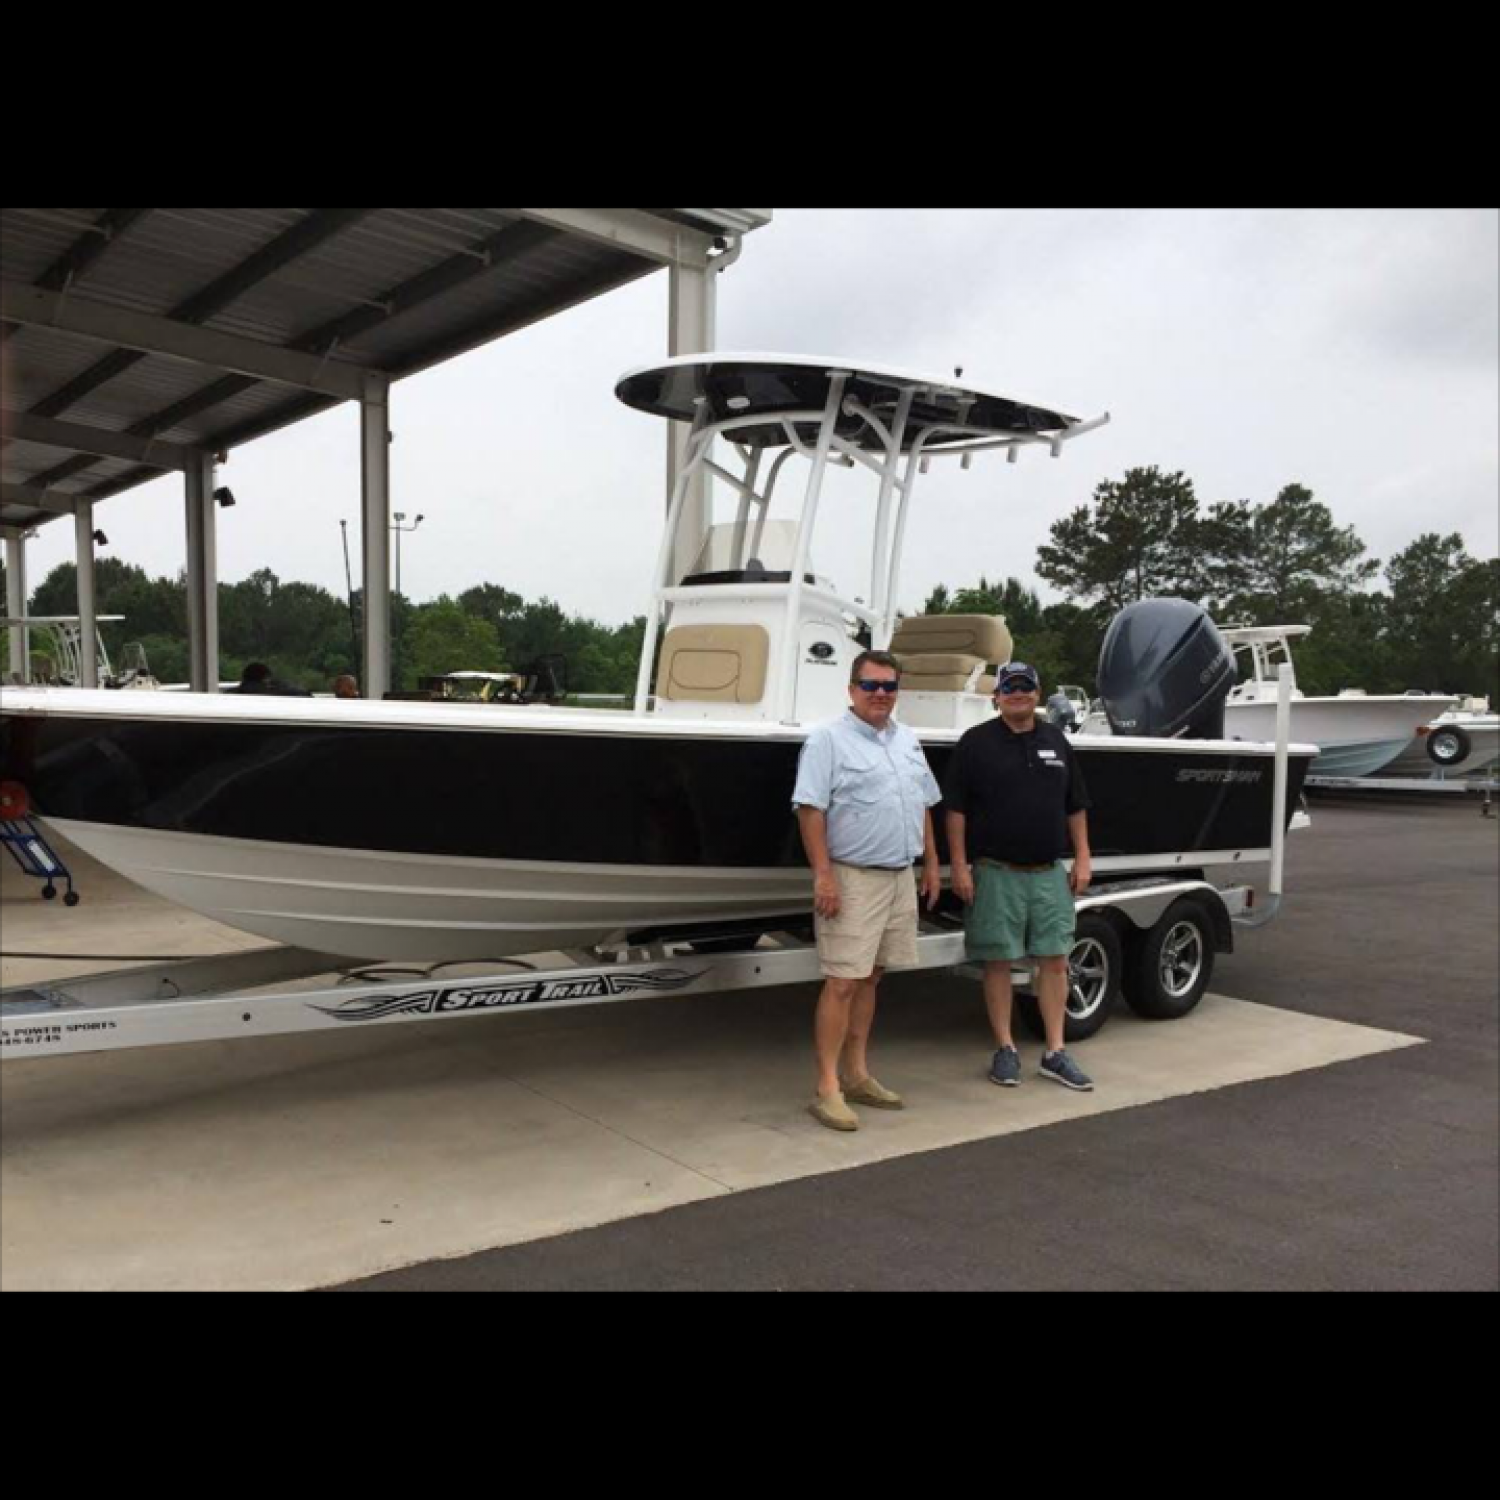 Title: Best Salesman - On board their Sportsman Masters 247 Bay Boat - Location: Mobile, Alabama. Participating in the Photo Contest #SportsmanMay2016